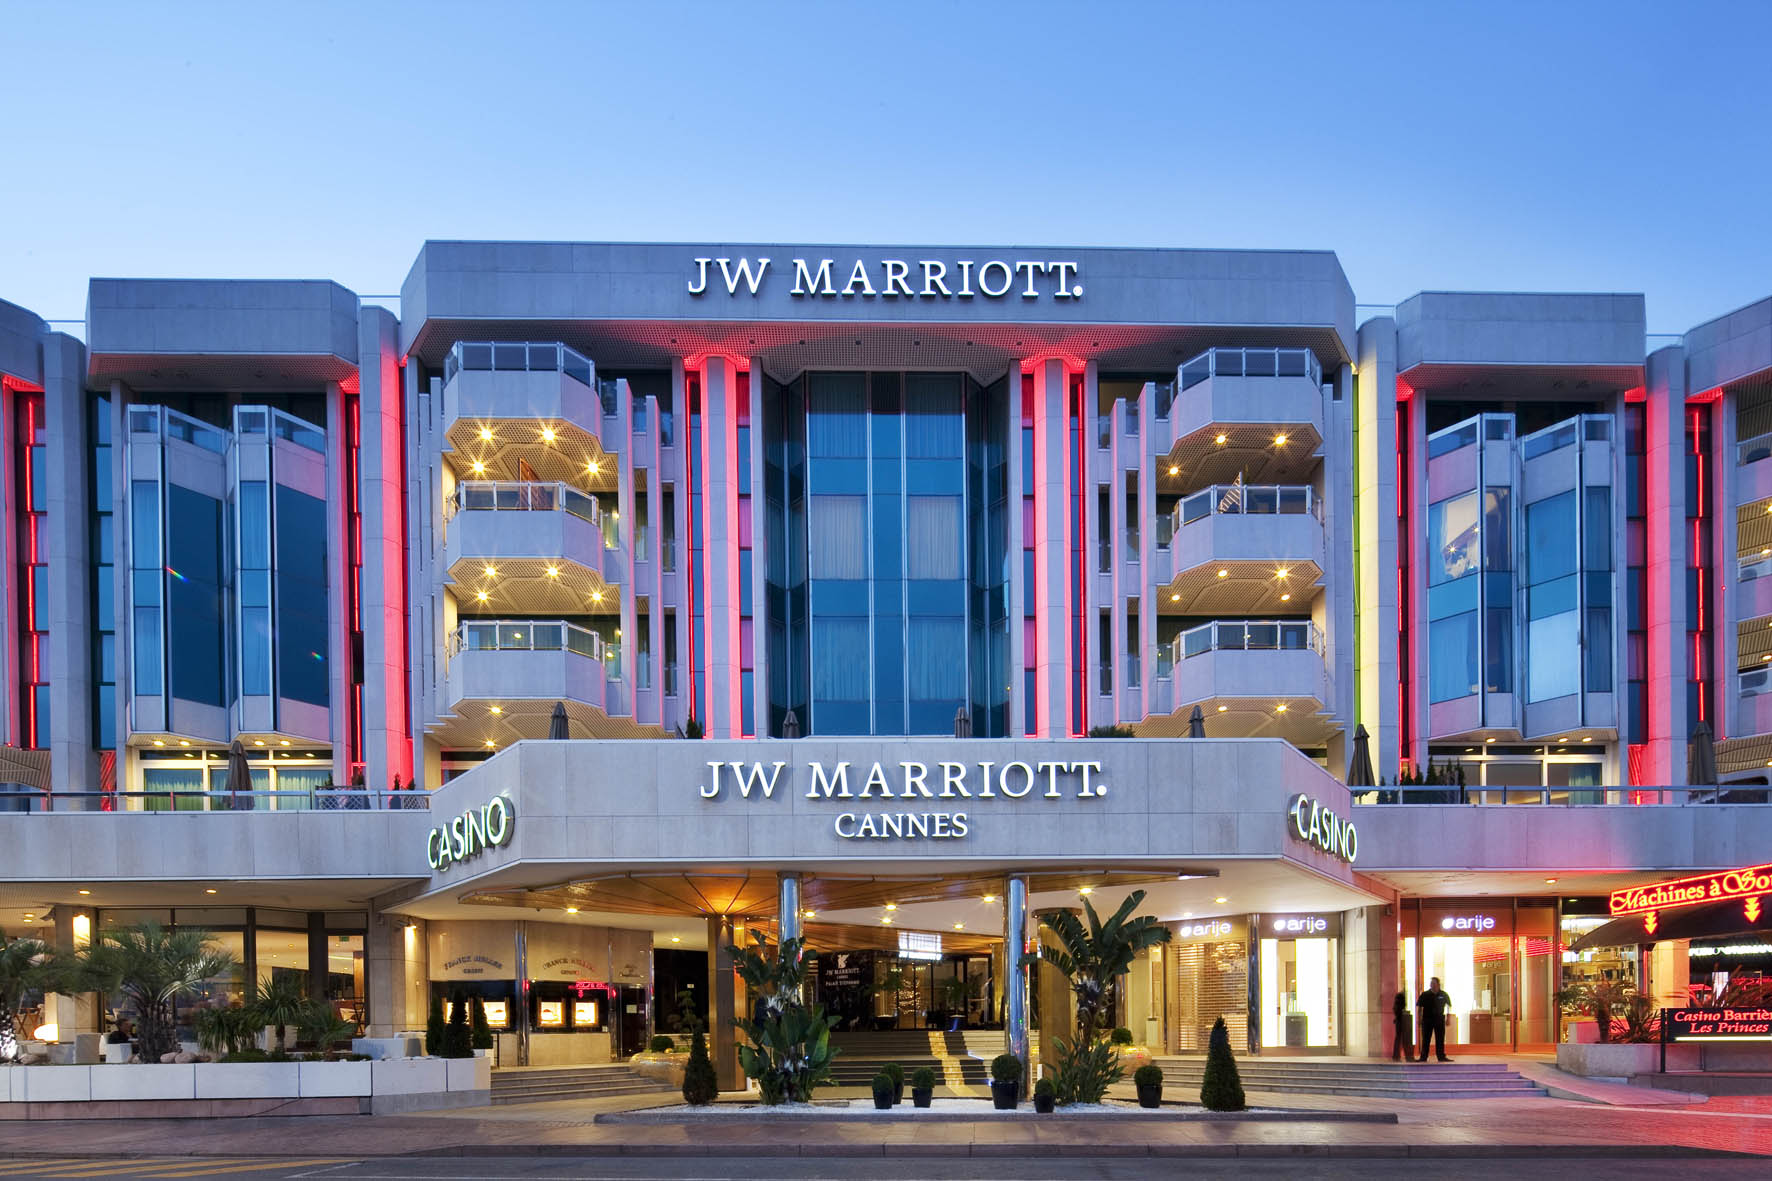 Jw marriott cannes s minaires salons incentives for Hotel luxe france